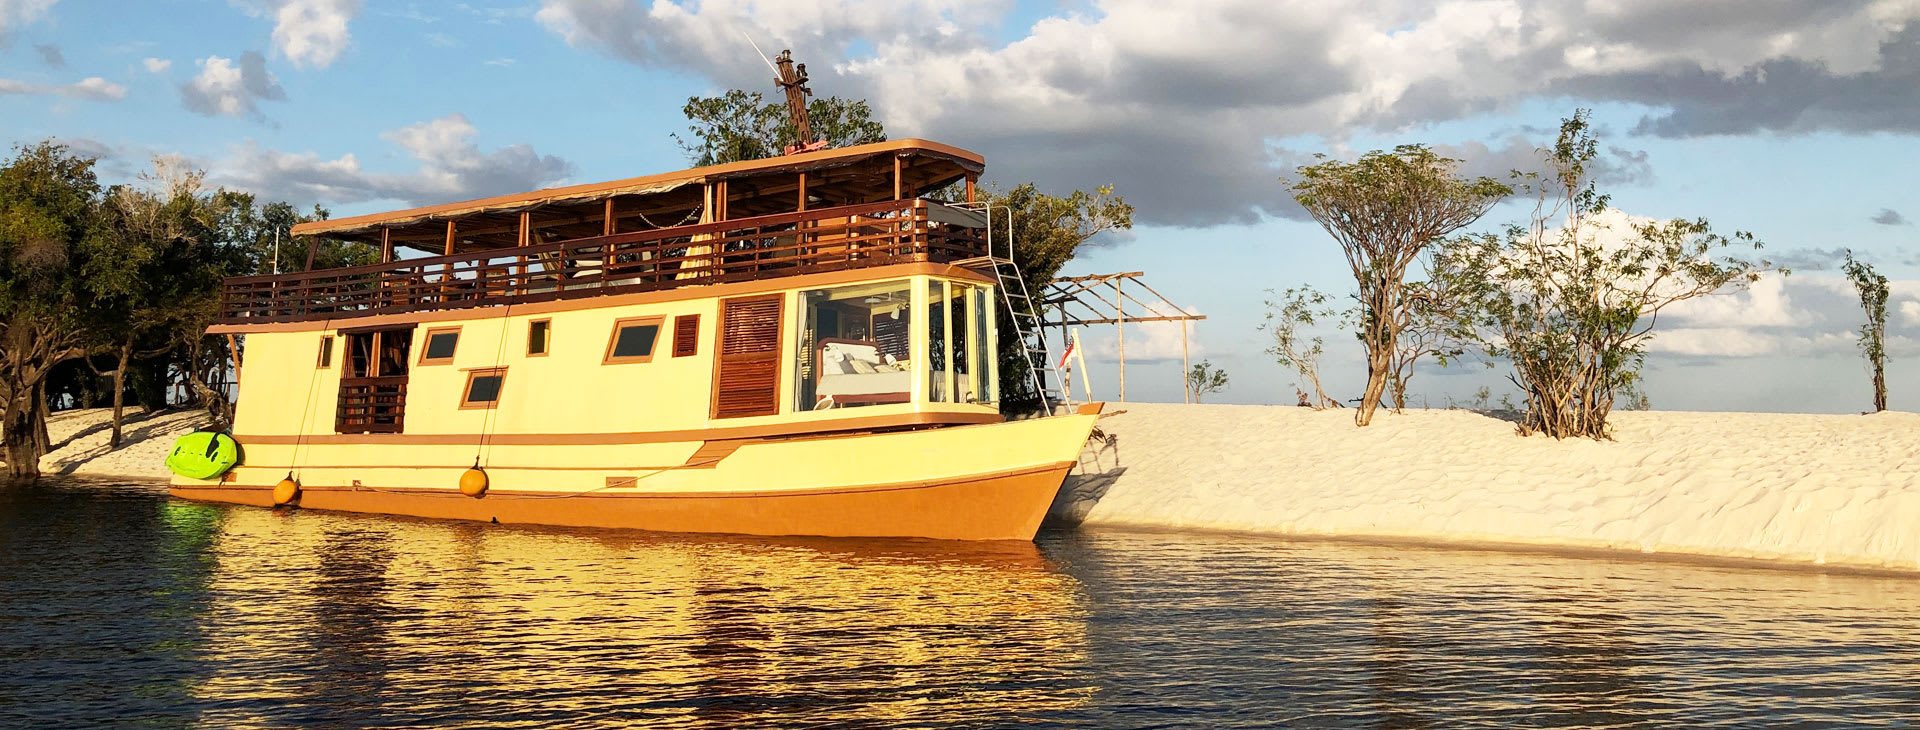 Amazon Odyssey on the river